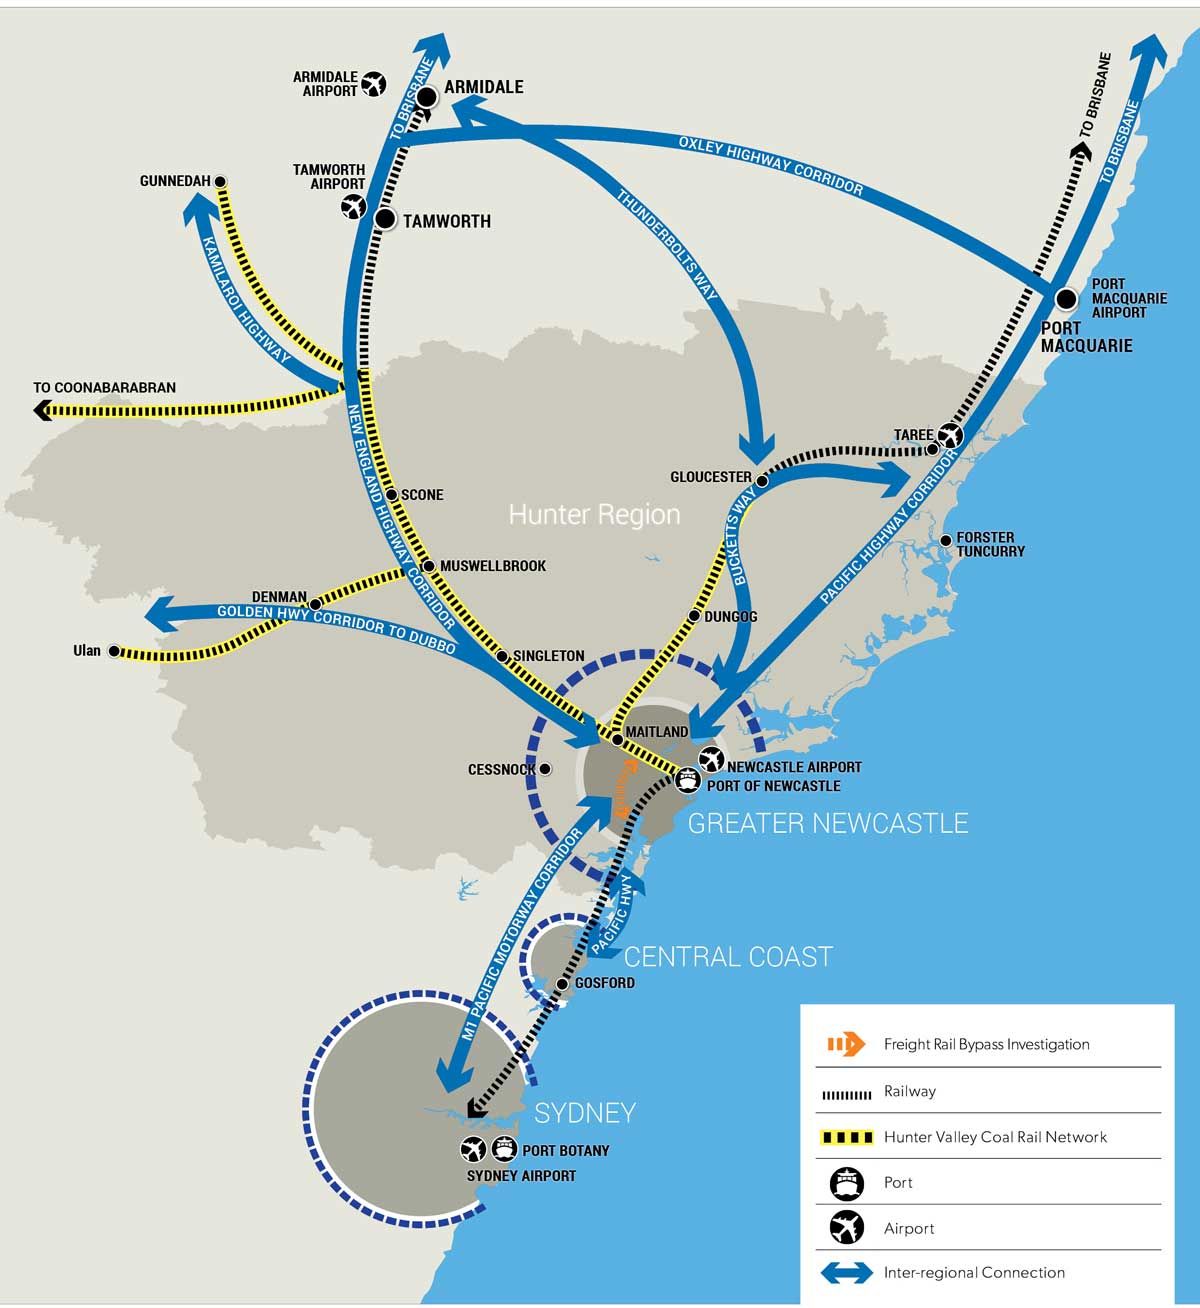 A map of the inter-regional transport connections between Sydney, the Central Coast, and the Greater Newcastle regions.